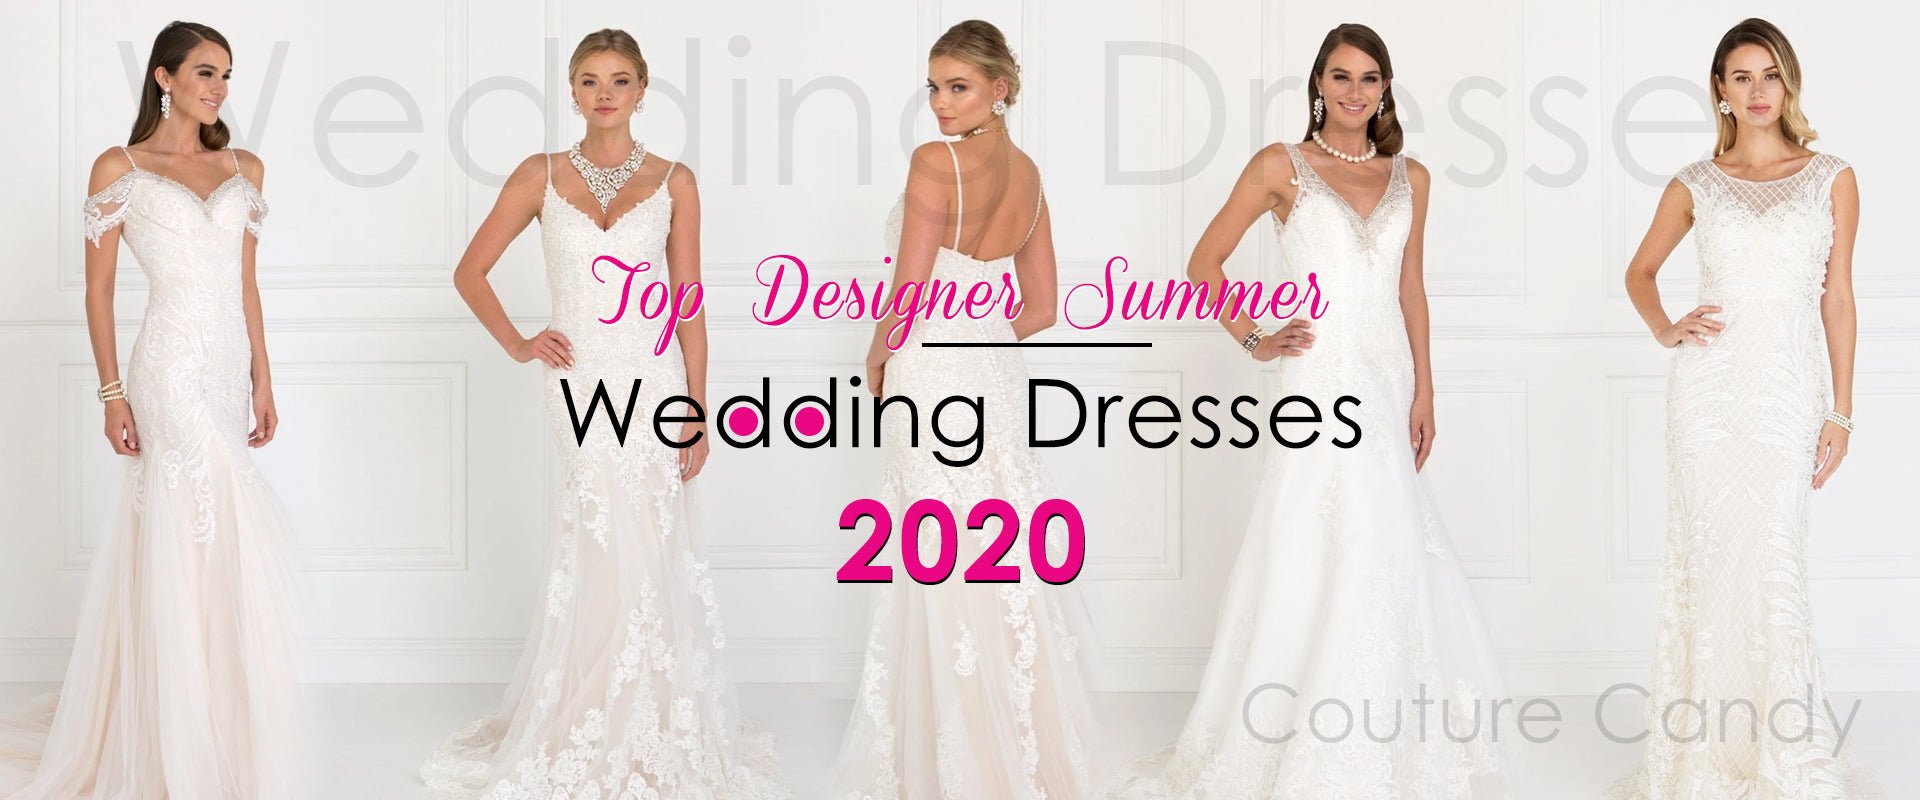 Top Designer Summer Wedding Dresses & Trends for 2020